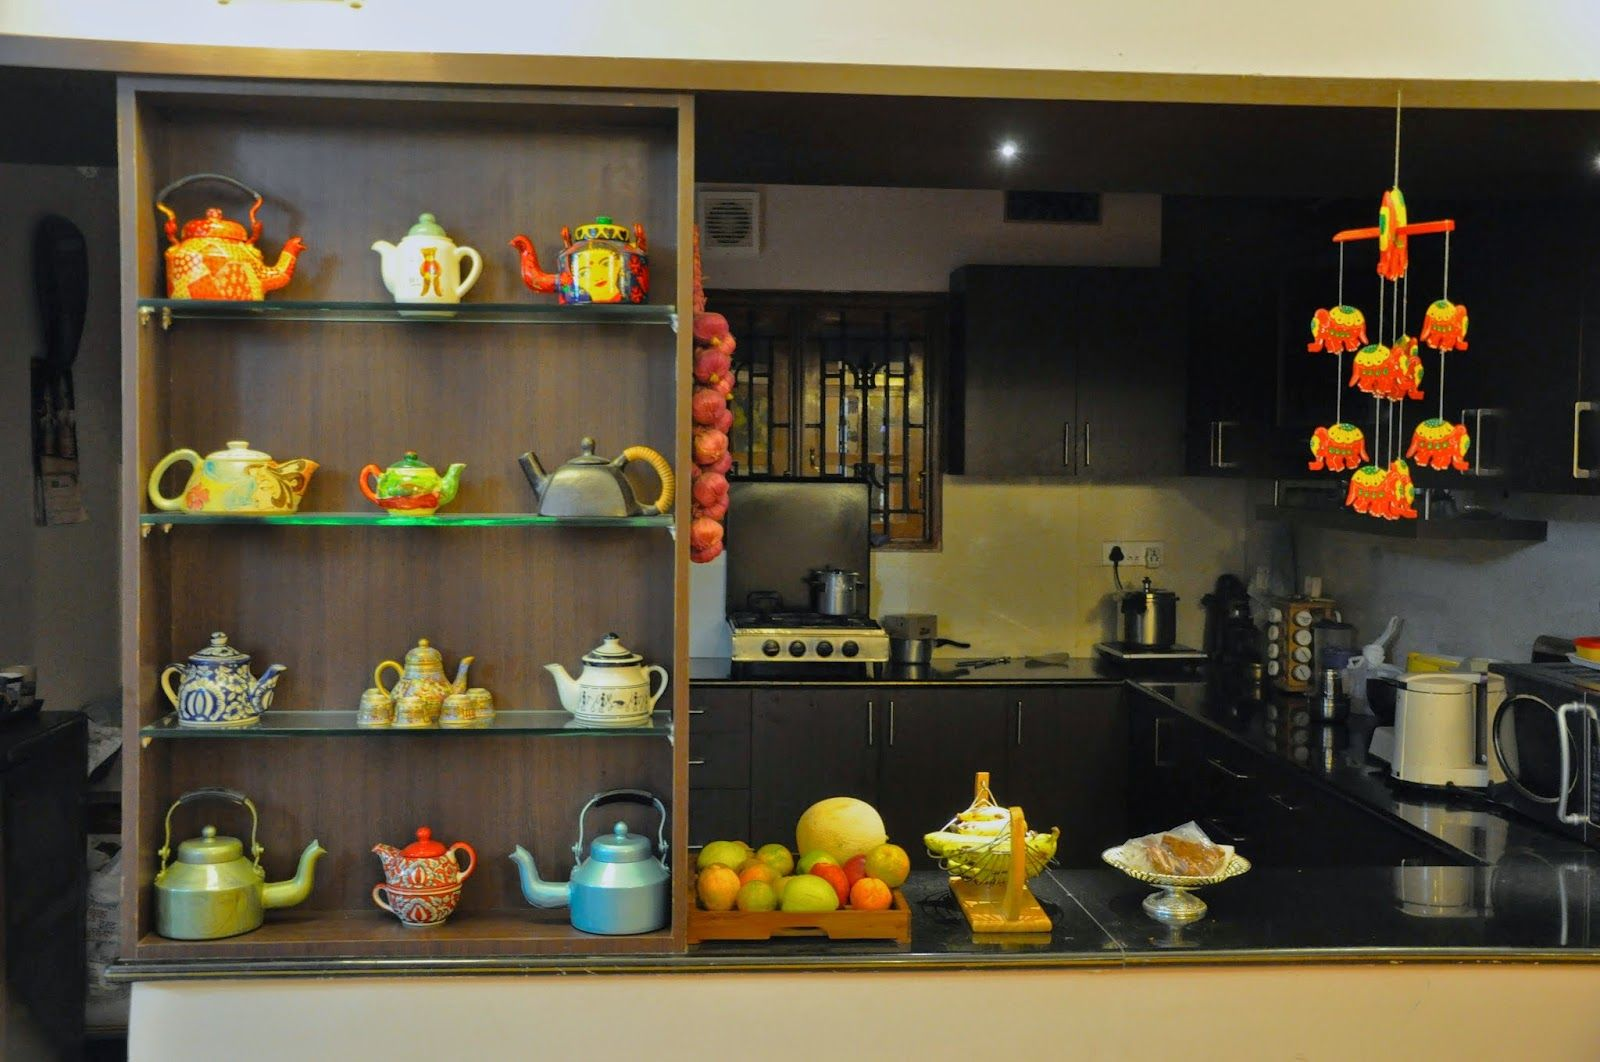 Aalayam Colors Cuisines and Cultures Inspired